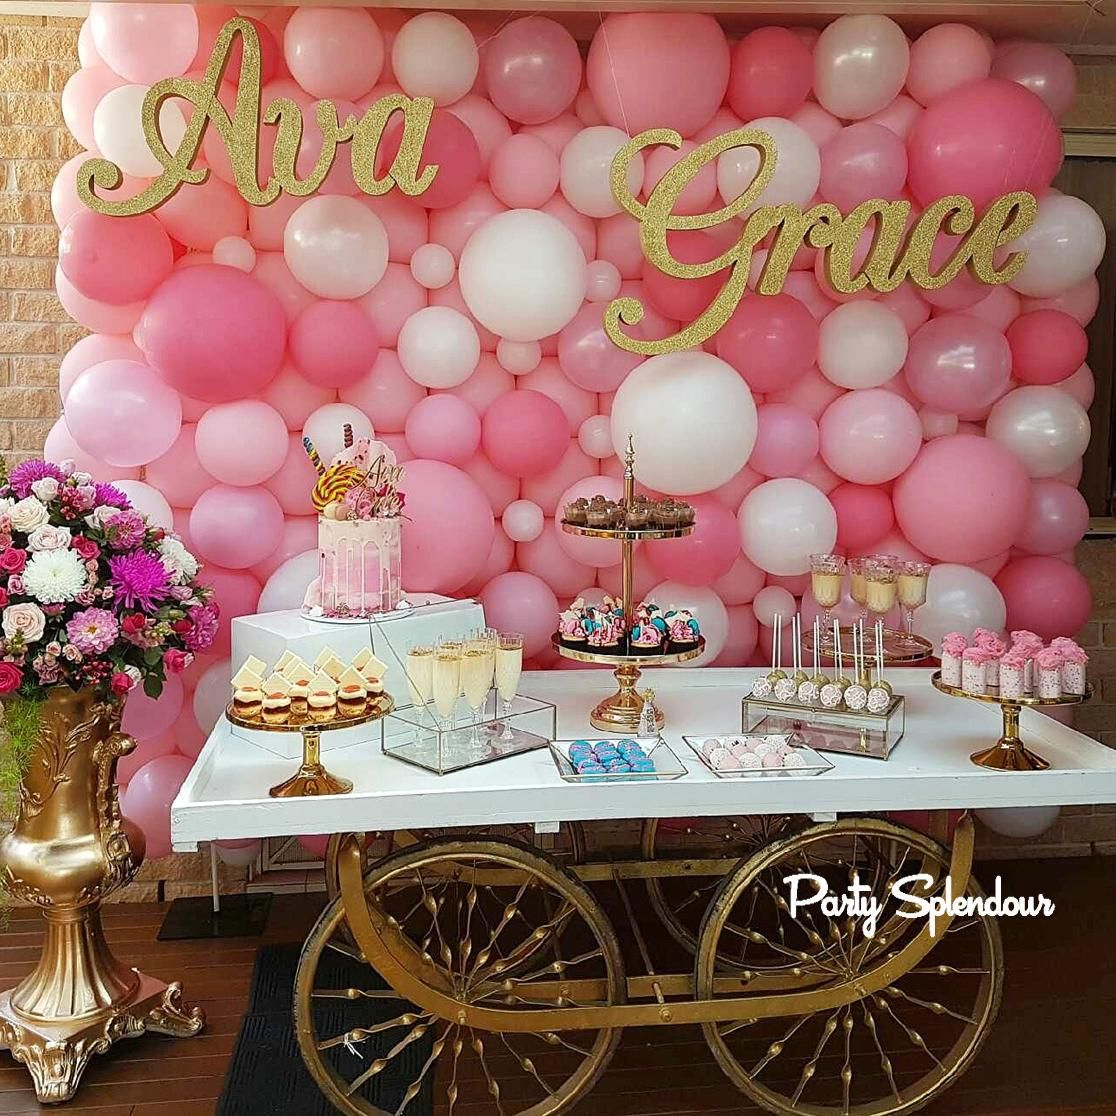 Gorgeous Pink Balloon Wall by Party Splendour in Sydney Balloon